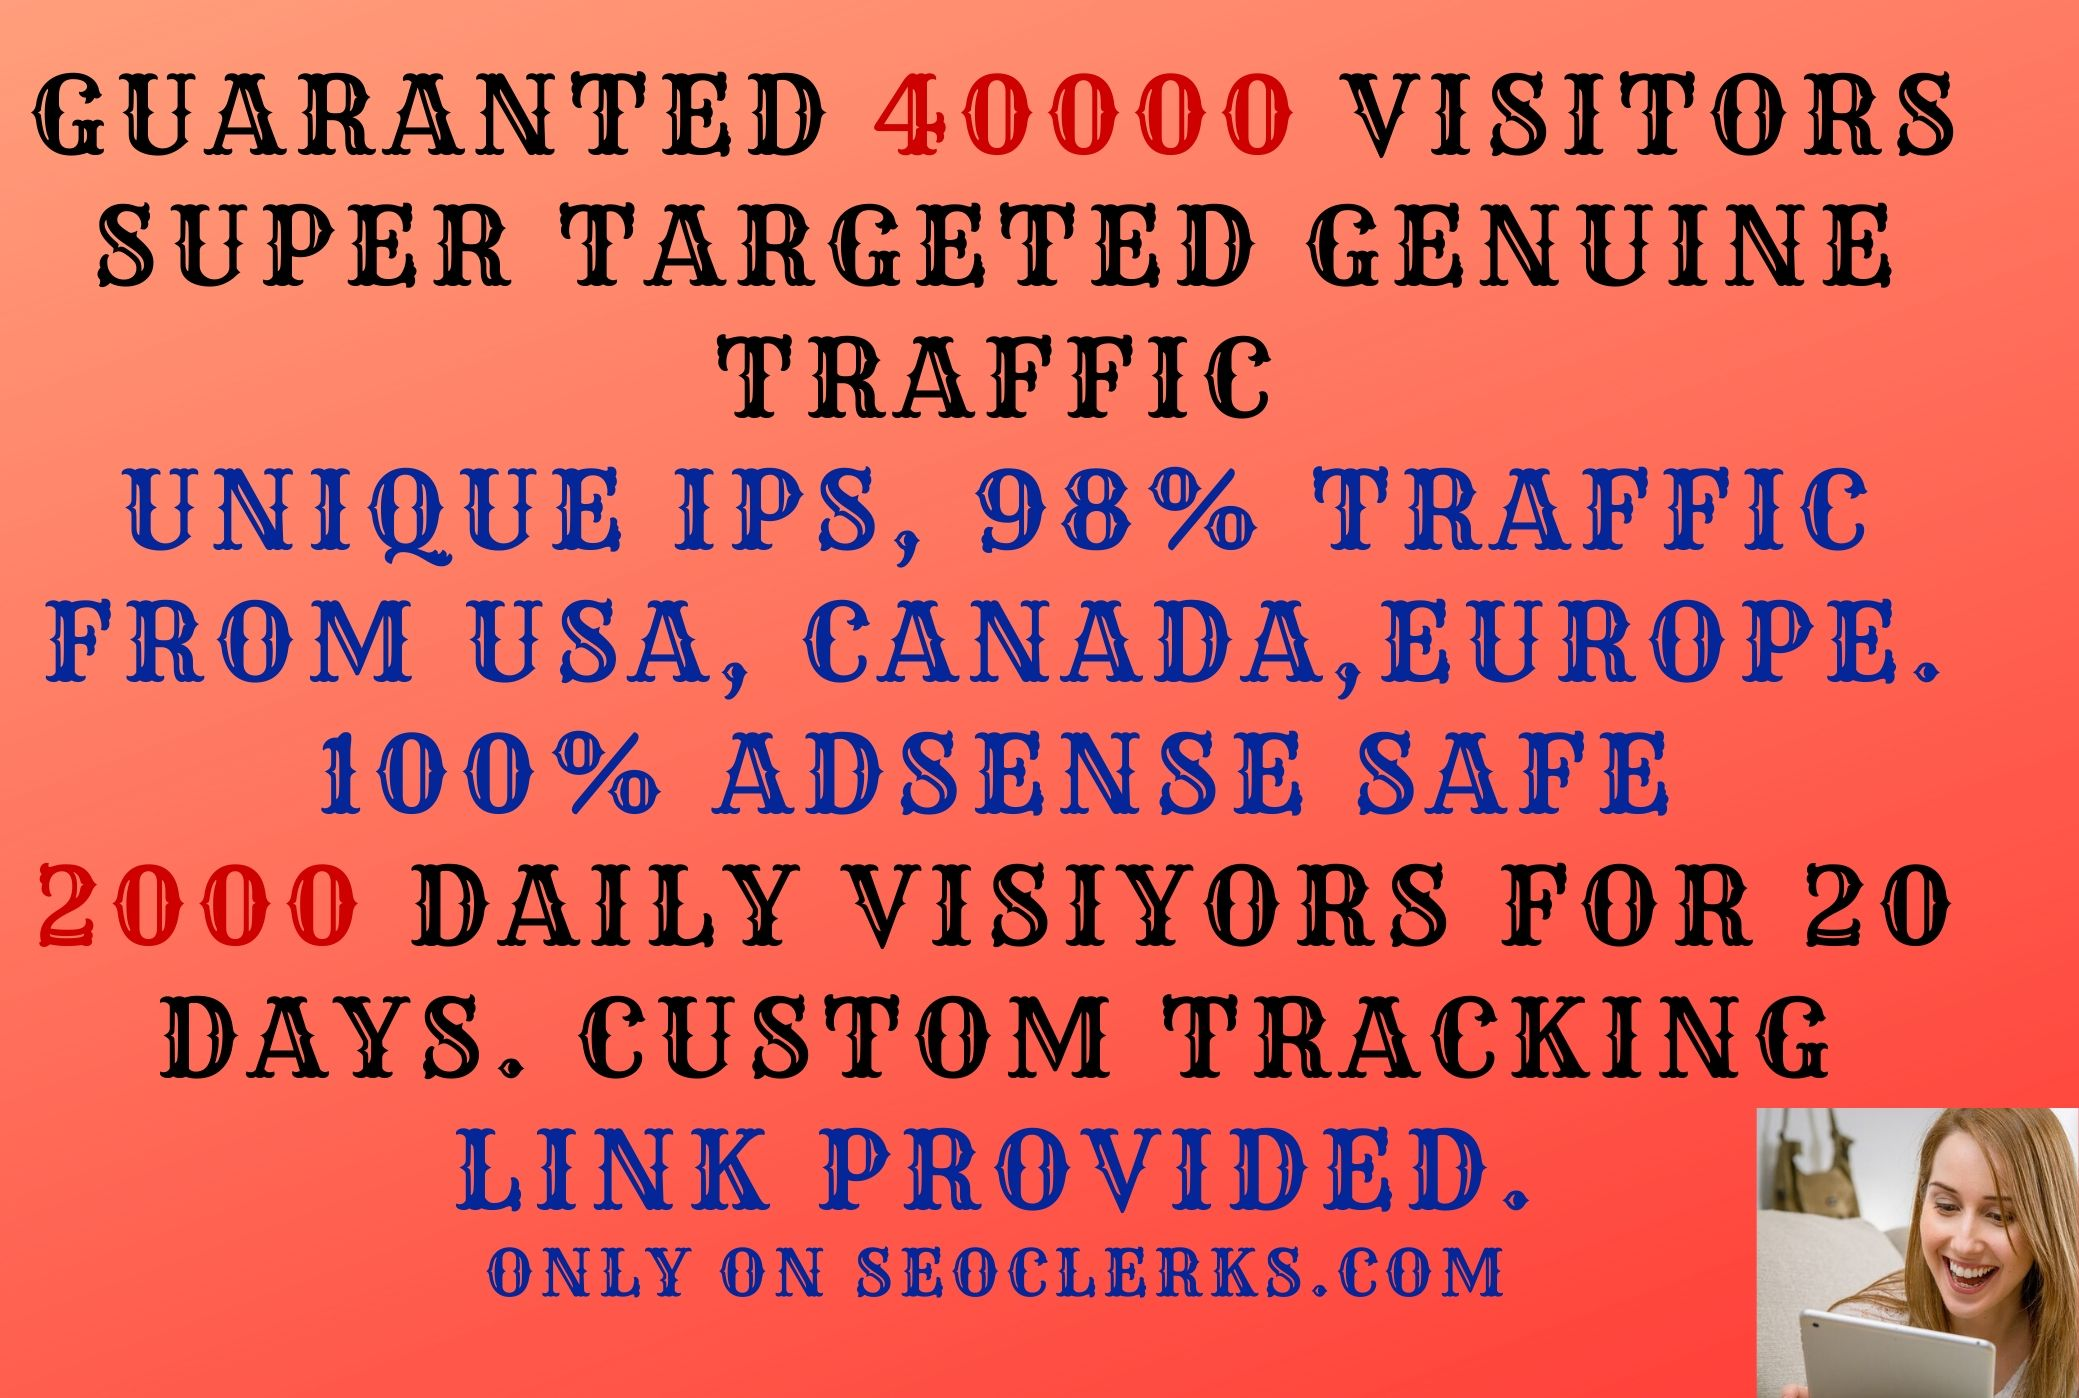 I will drive 40000 super targeted genuine traffic from USA,  Canada,  Europe within 20 days